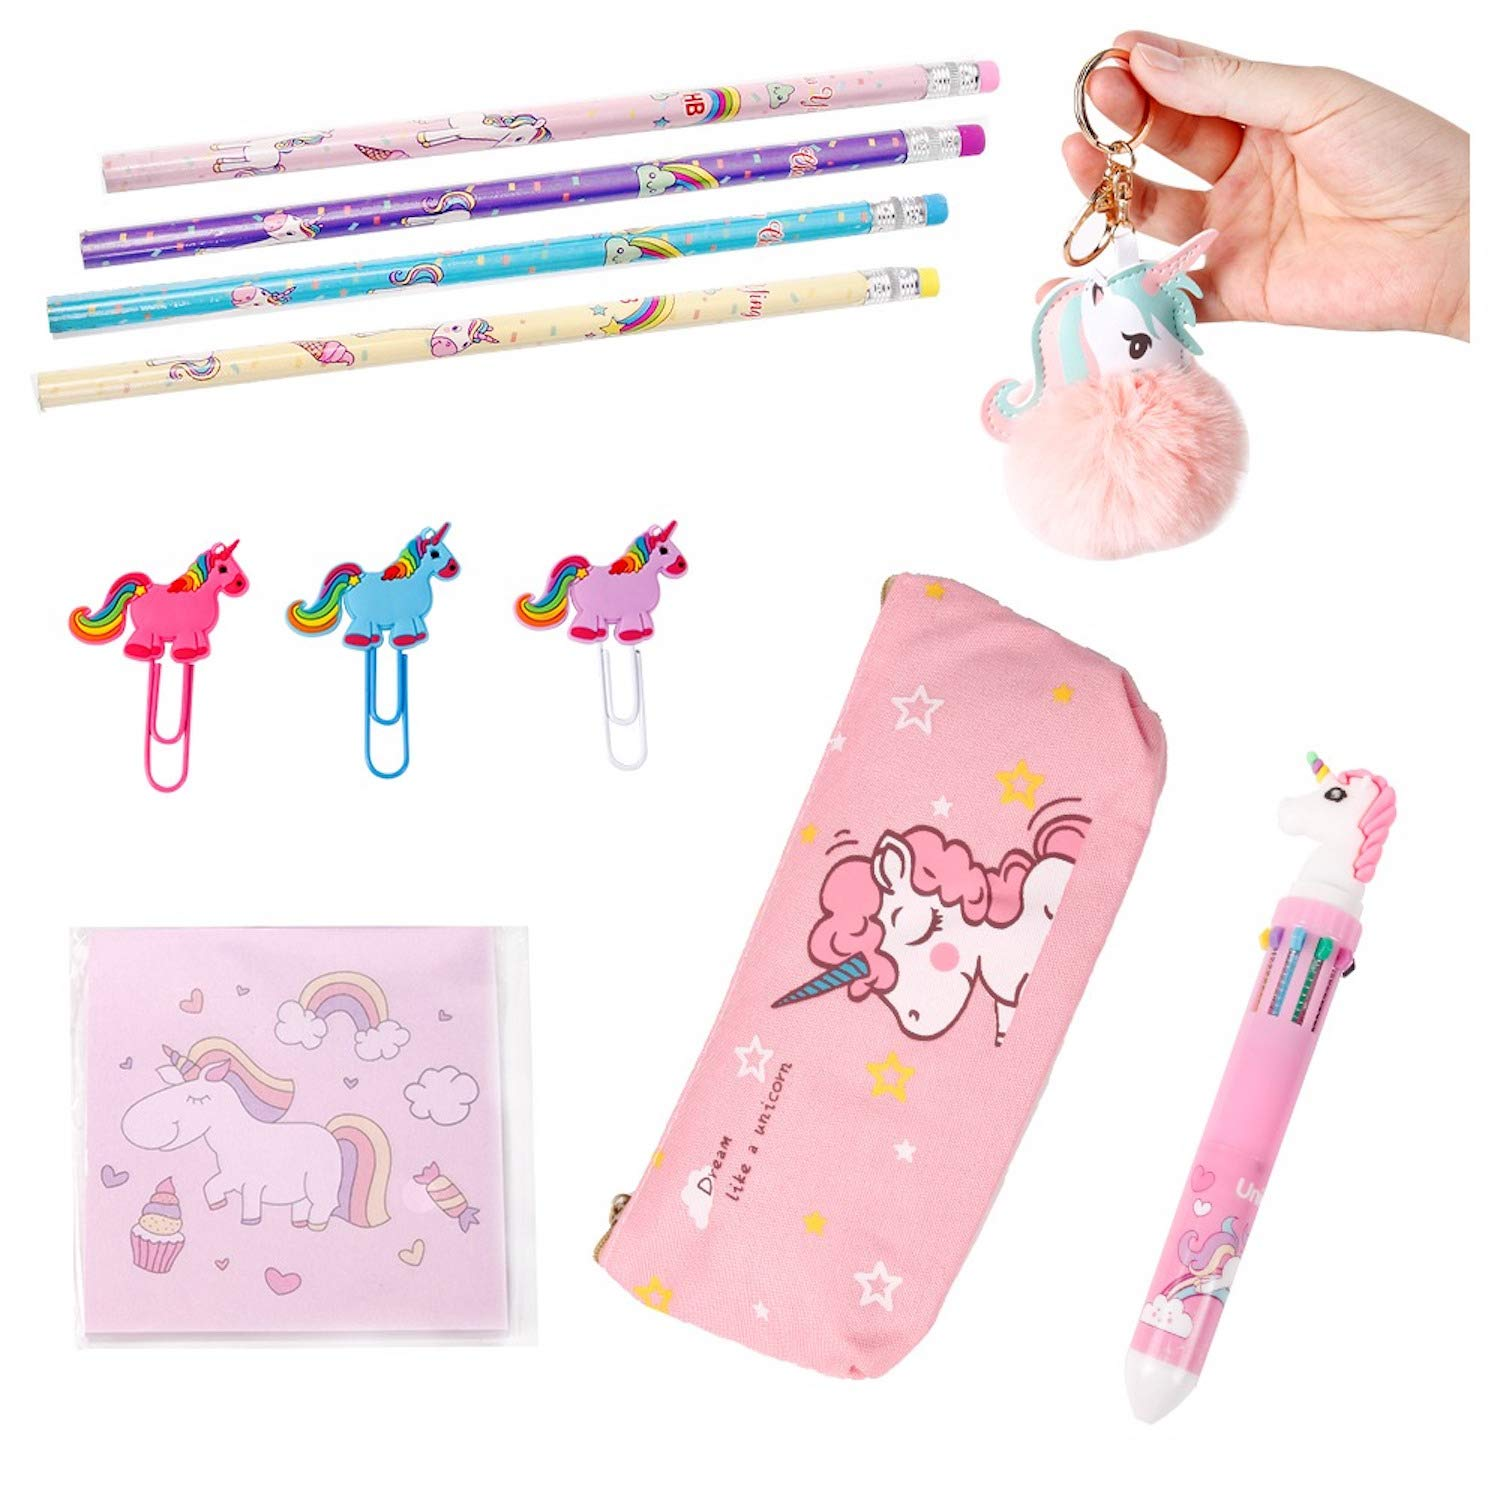 Unicorn Stationary Gift Set for Girls, Unicorn School Supplies with Unicorn Pom Pom Keychain, Unicorn Pen, Pencils, Stickers, Paper Clips, and Unicorn Pencil Case